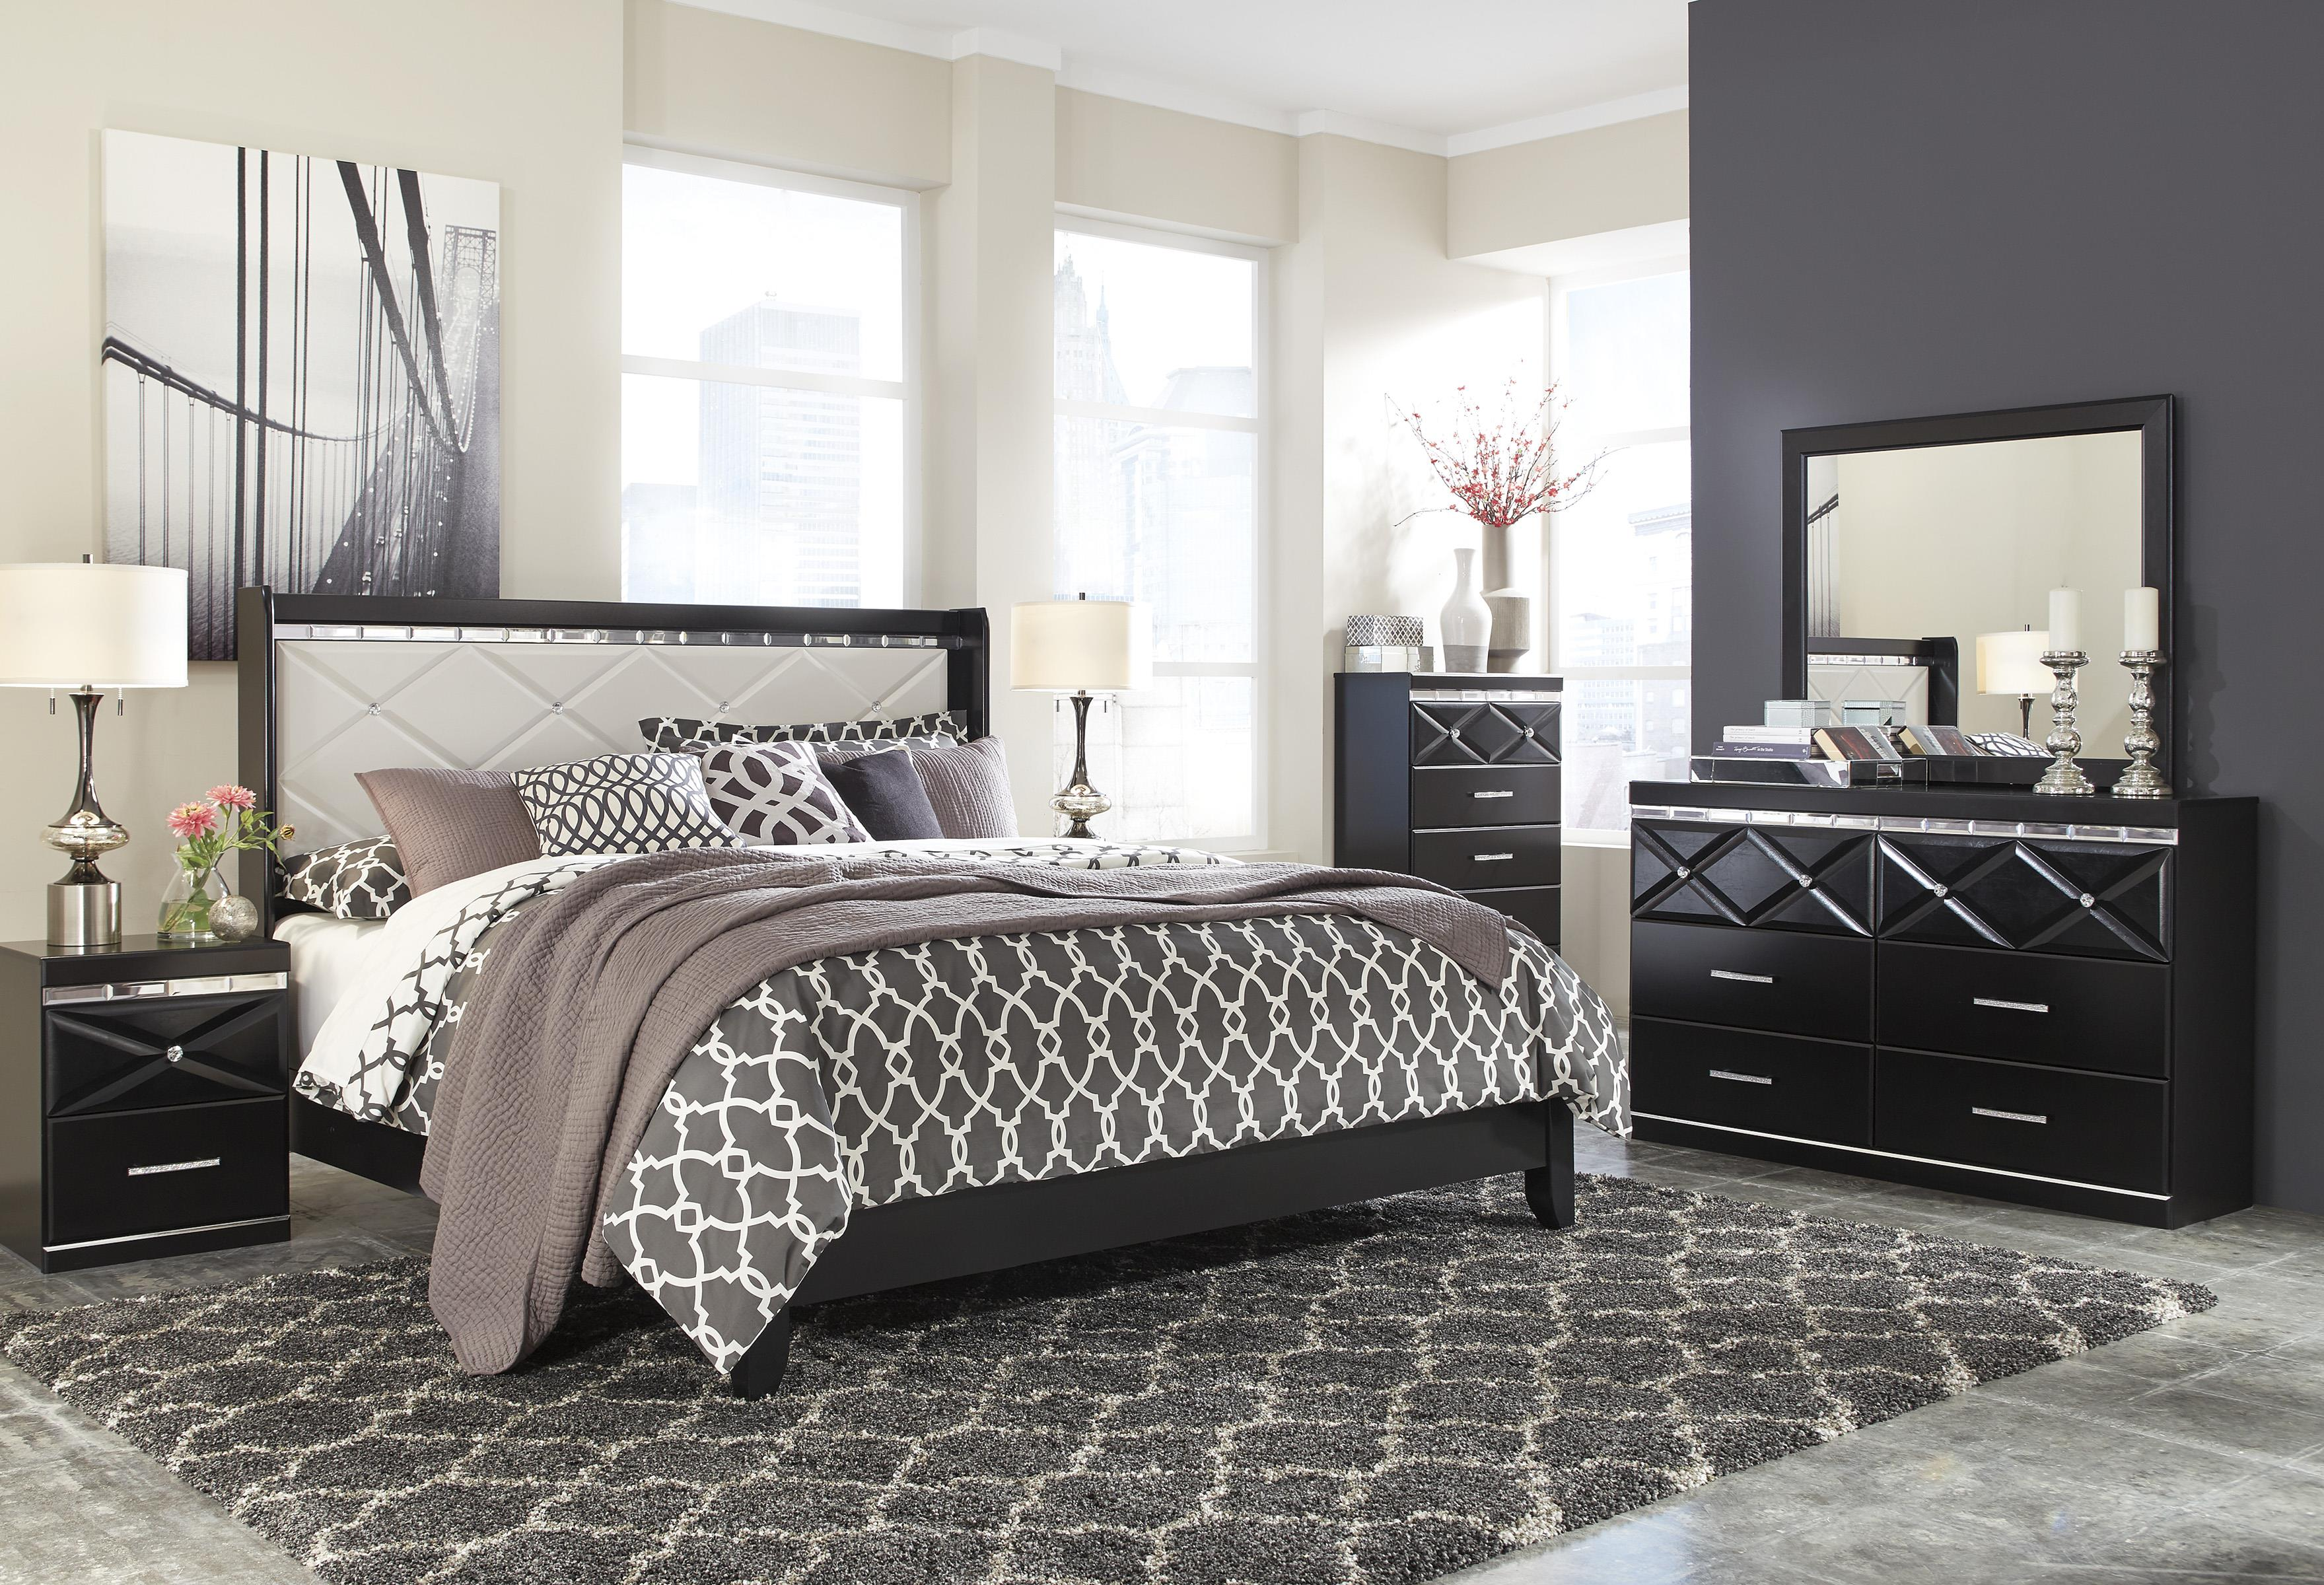 Signature Design by Ashley Fancee King Bedroom Group - Item Number: B348 K Bedroom Group 1